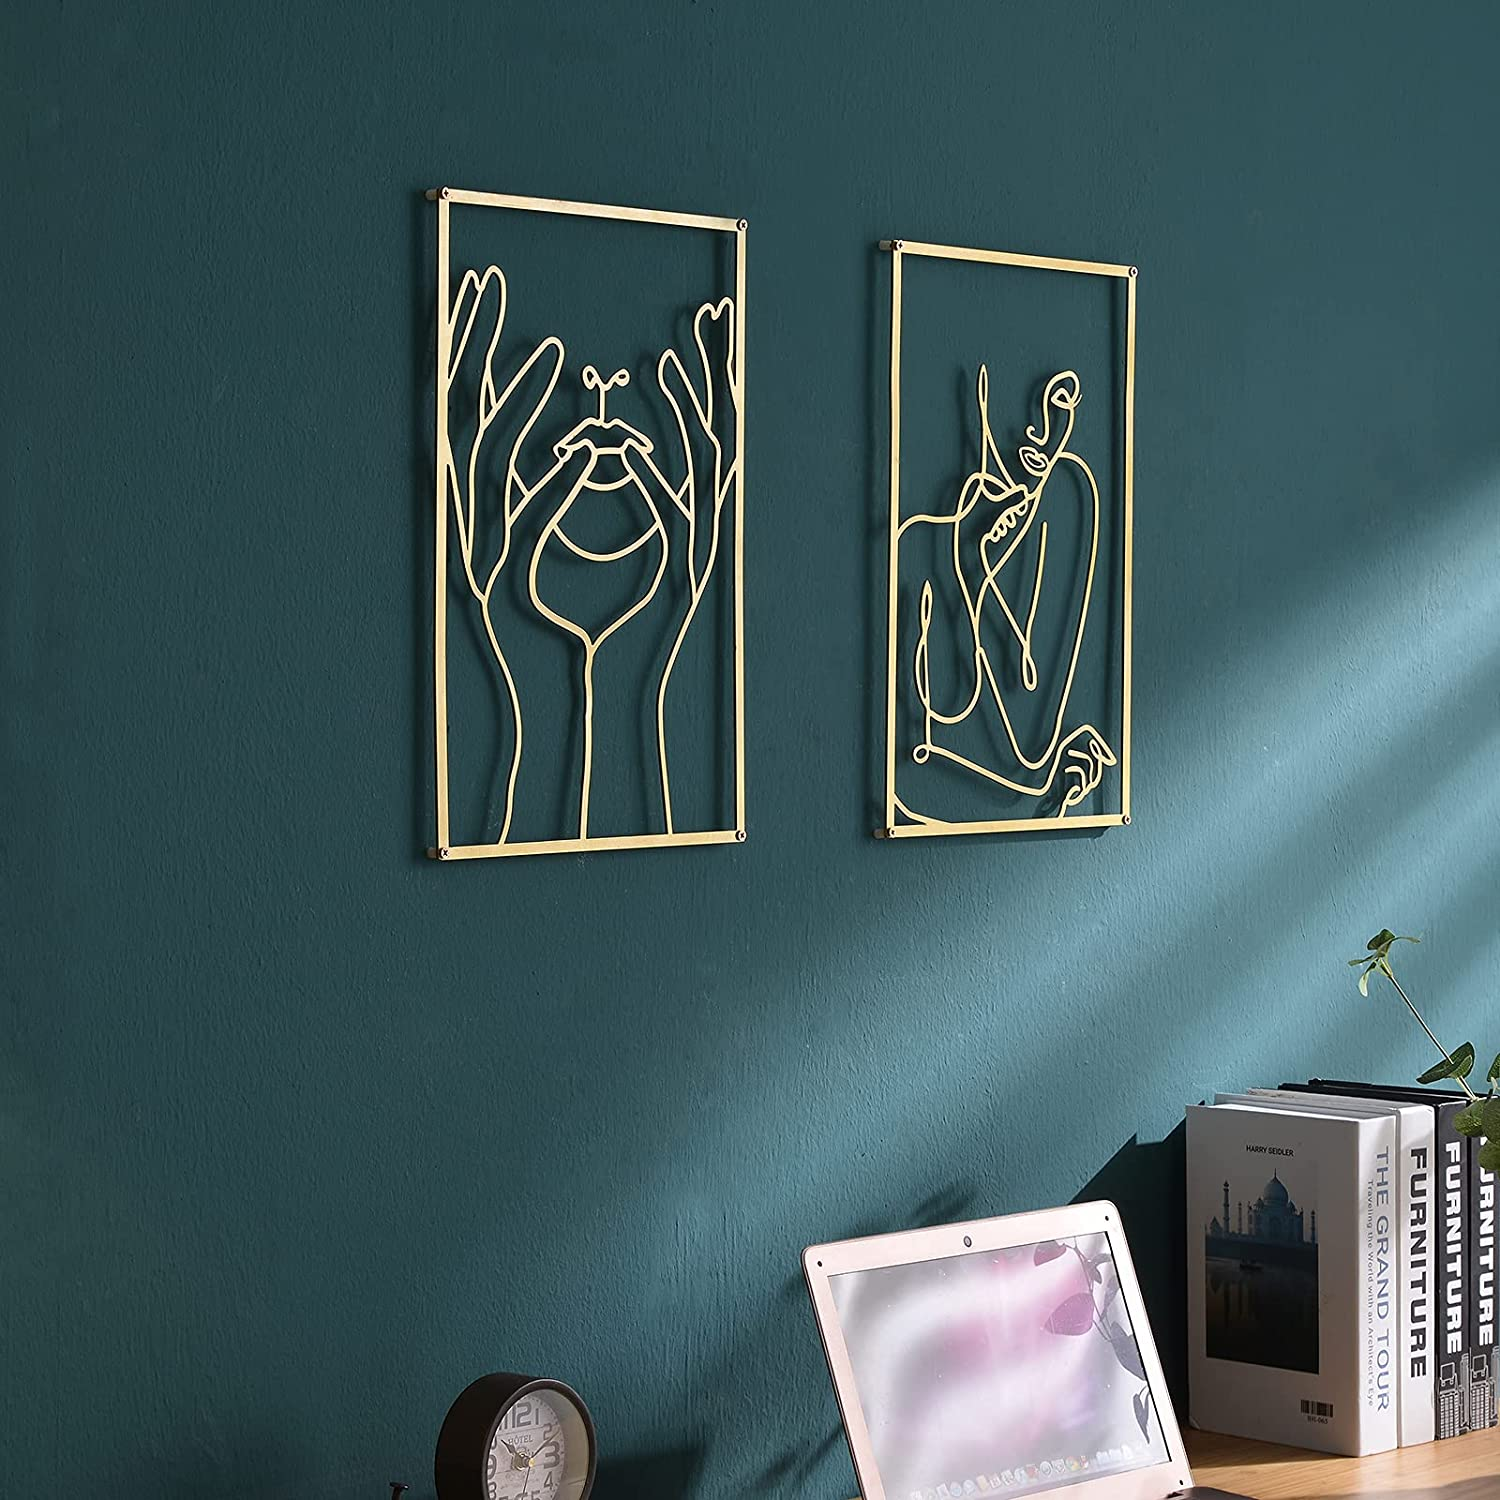 DeaTee 2 Pack Gold Wall Ranking TOP6 Art Metal Real Decor Wa 0.12'' Be super welcome Thicker